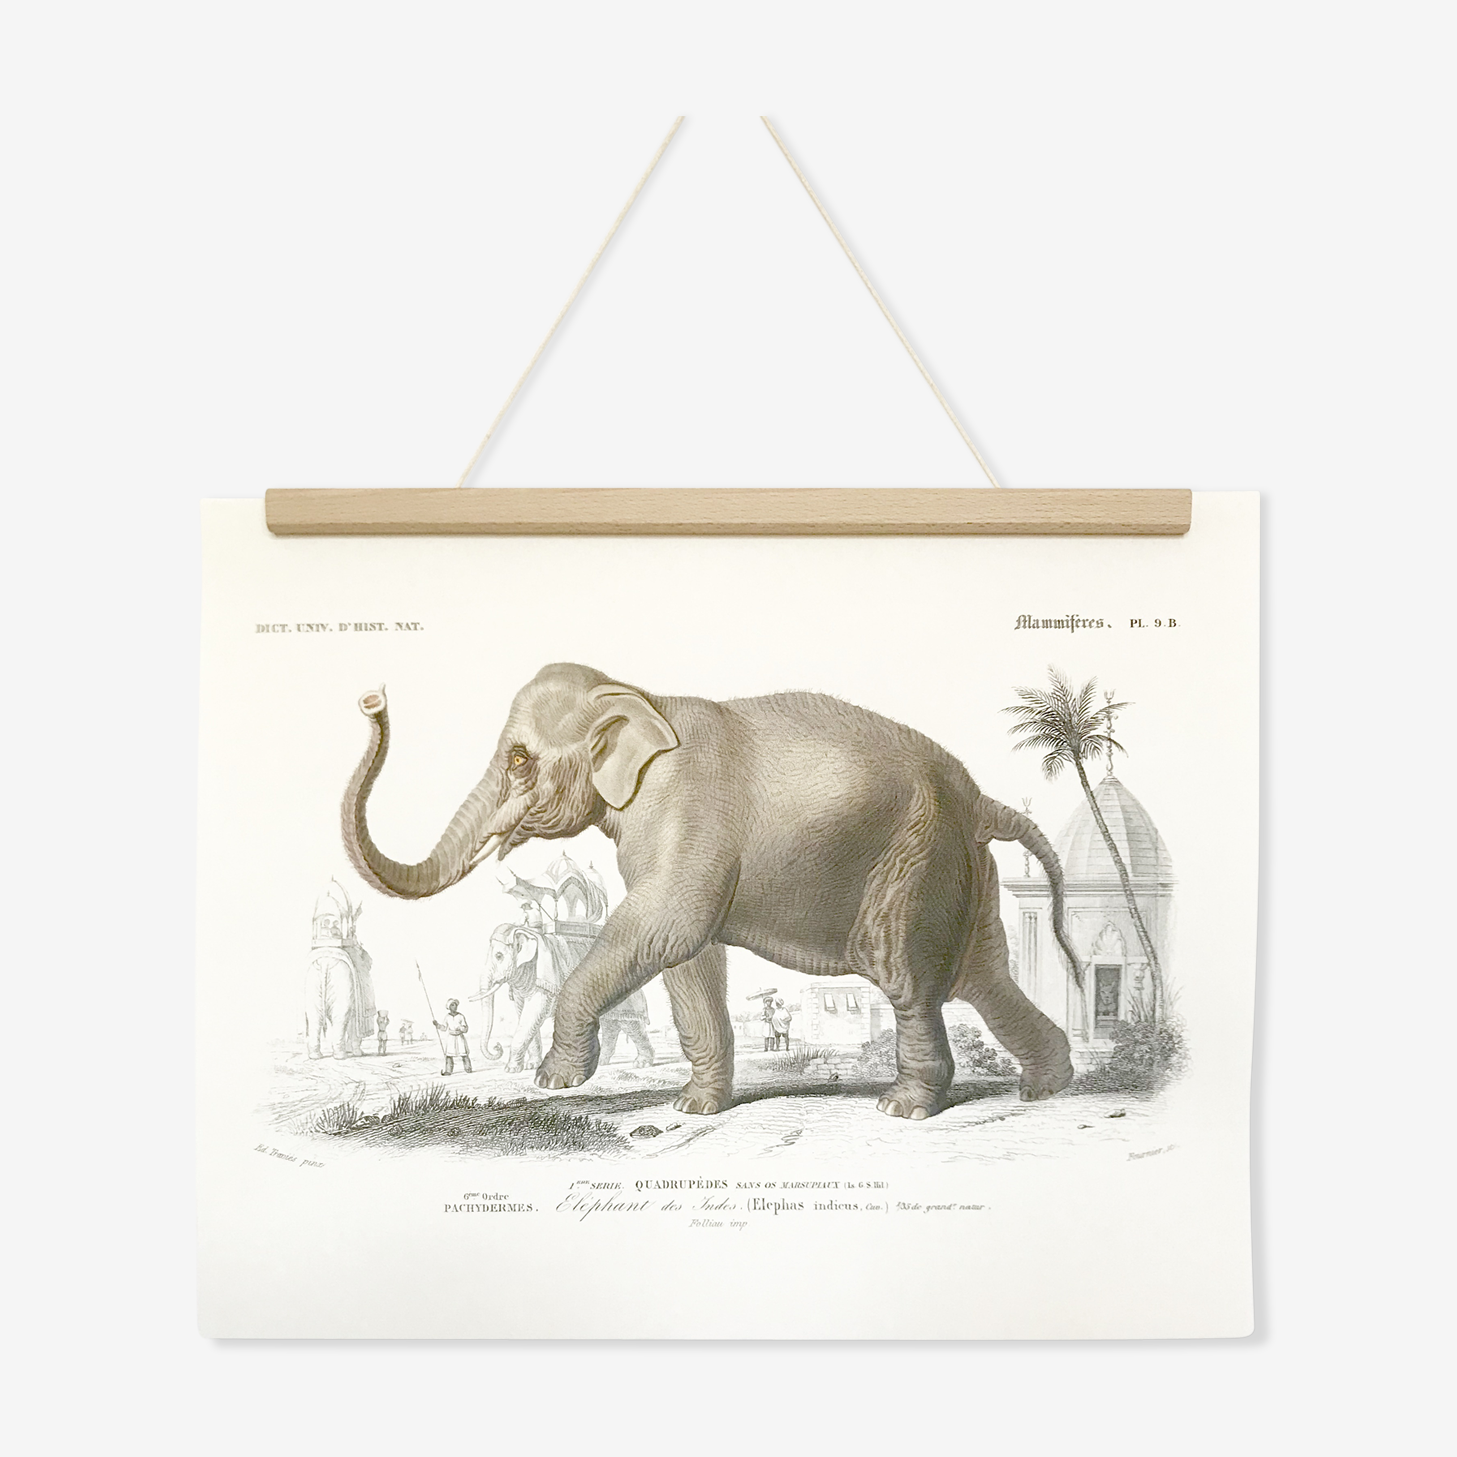 Displayed in colors representative of the Asian elephant